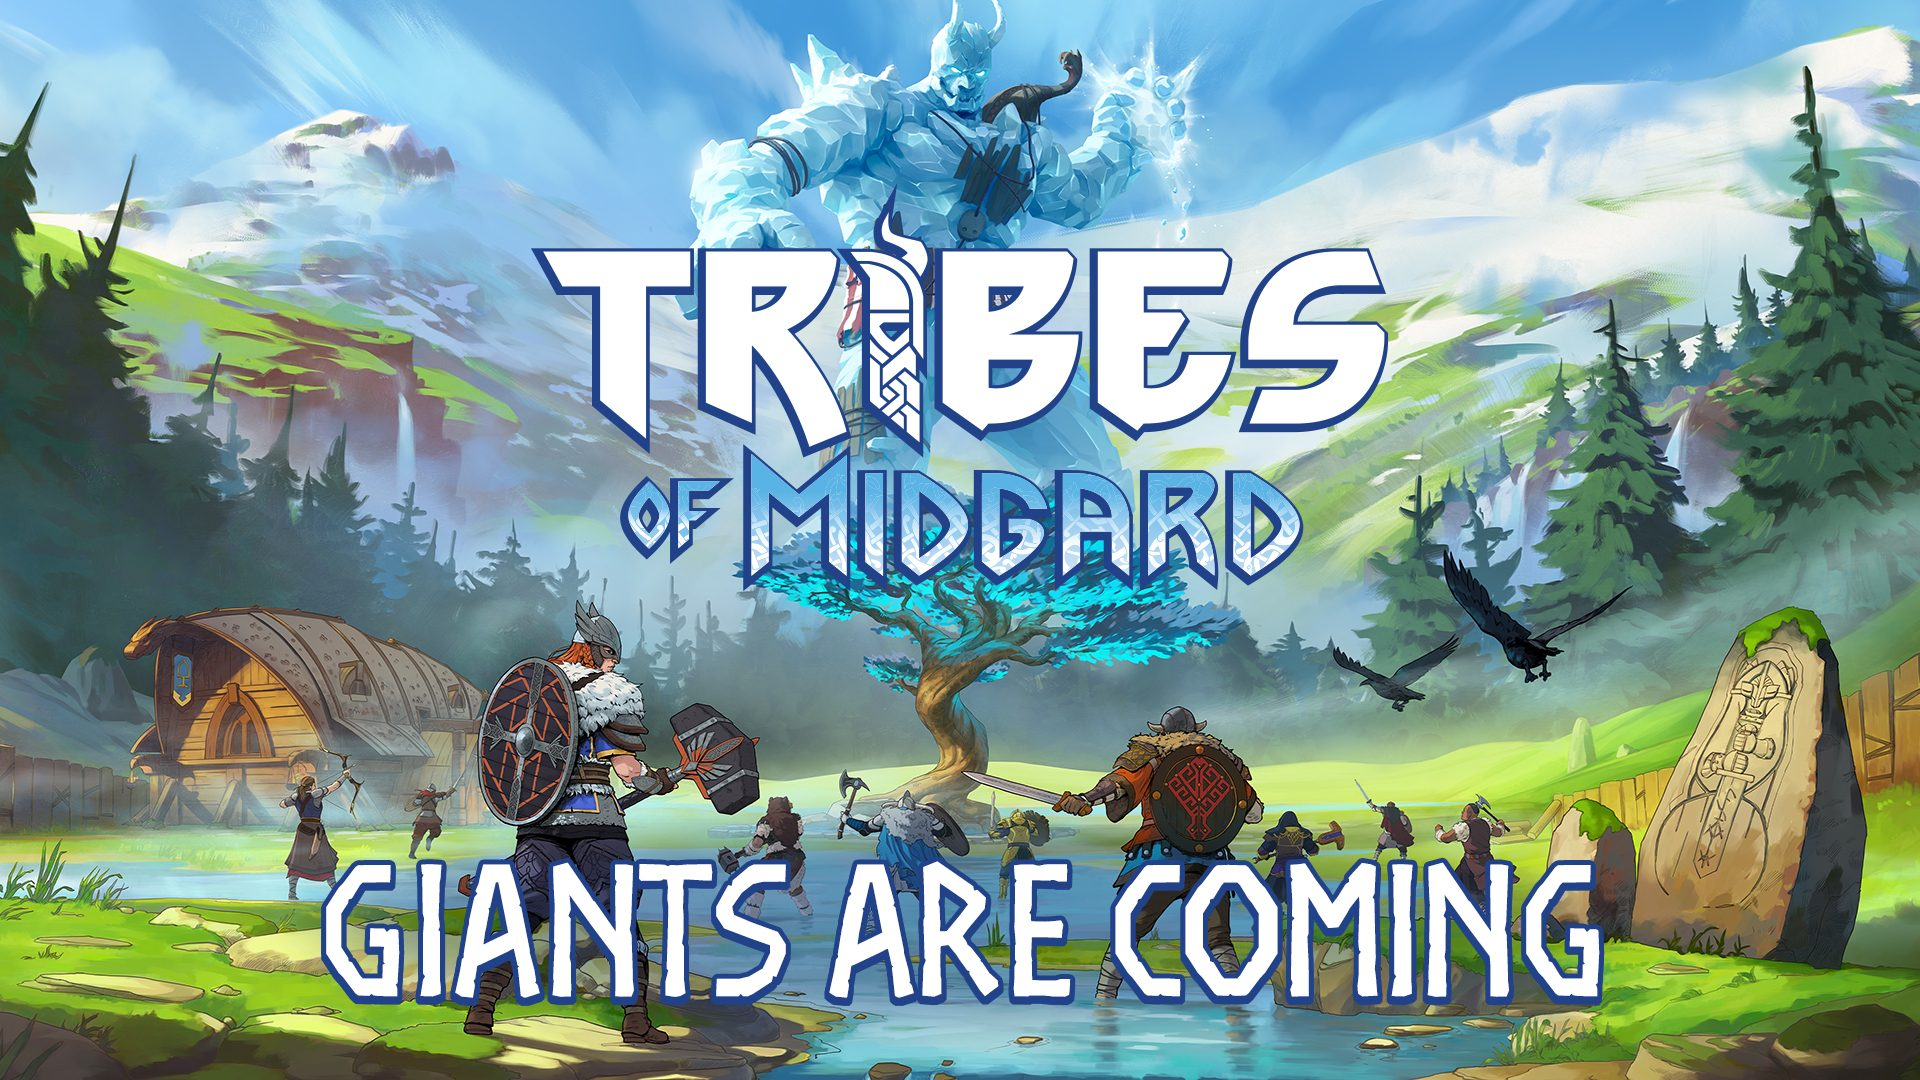 enter-the-environment-of-norsfell's-tribes-of-midgard,-a-co-op-motion-rpg-launching-july-27